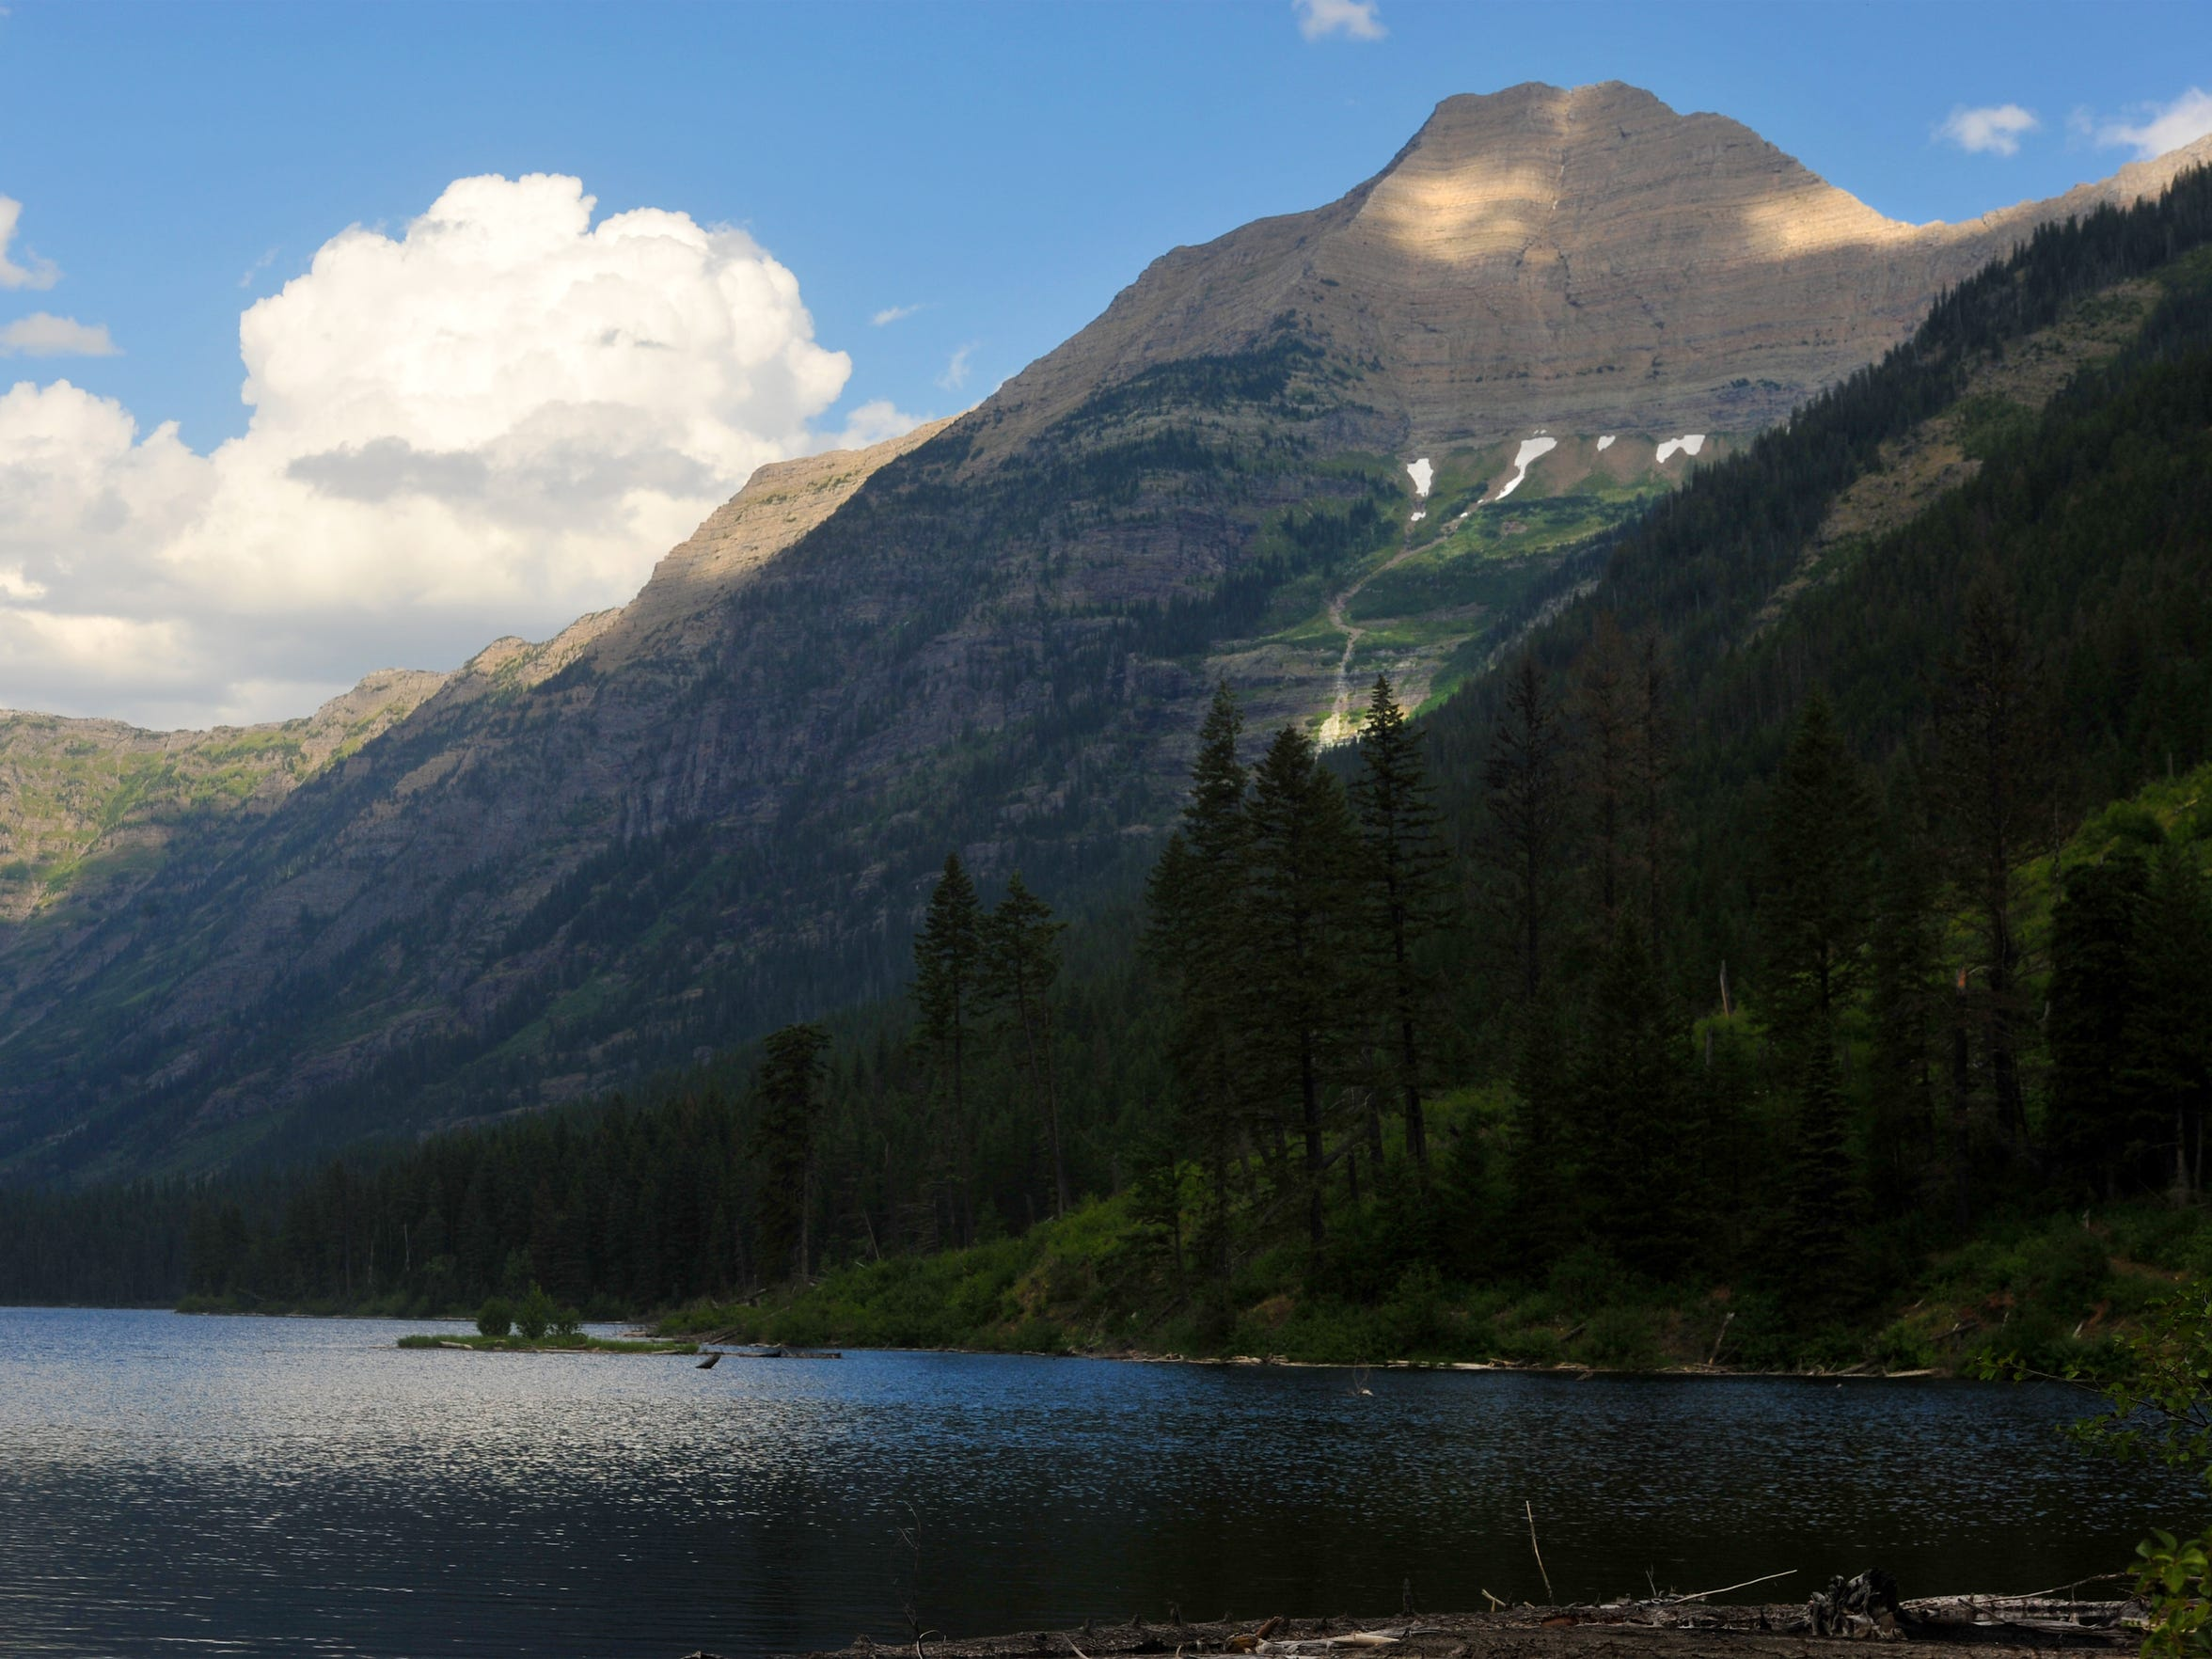 Heavens Peak overlooks Trout Lake in Glacier National